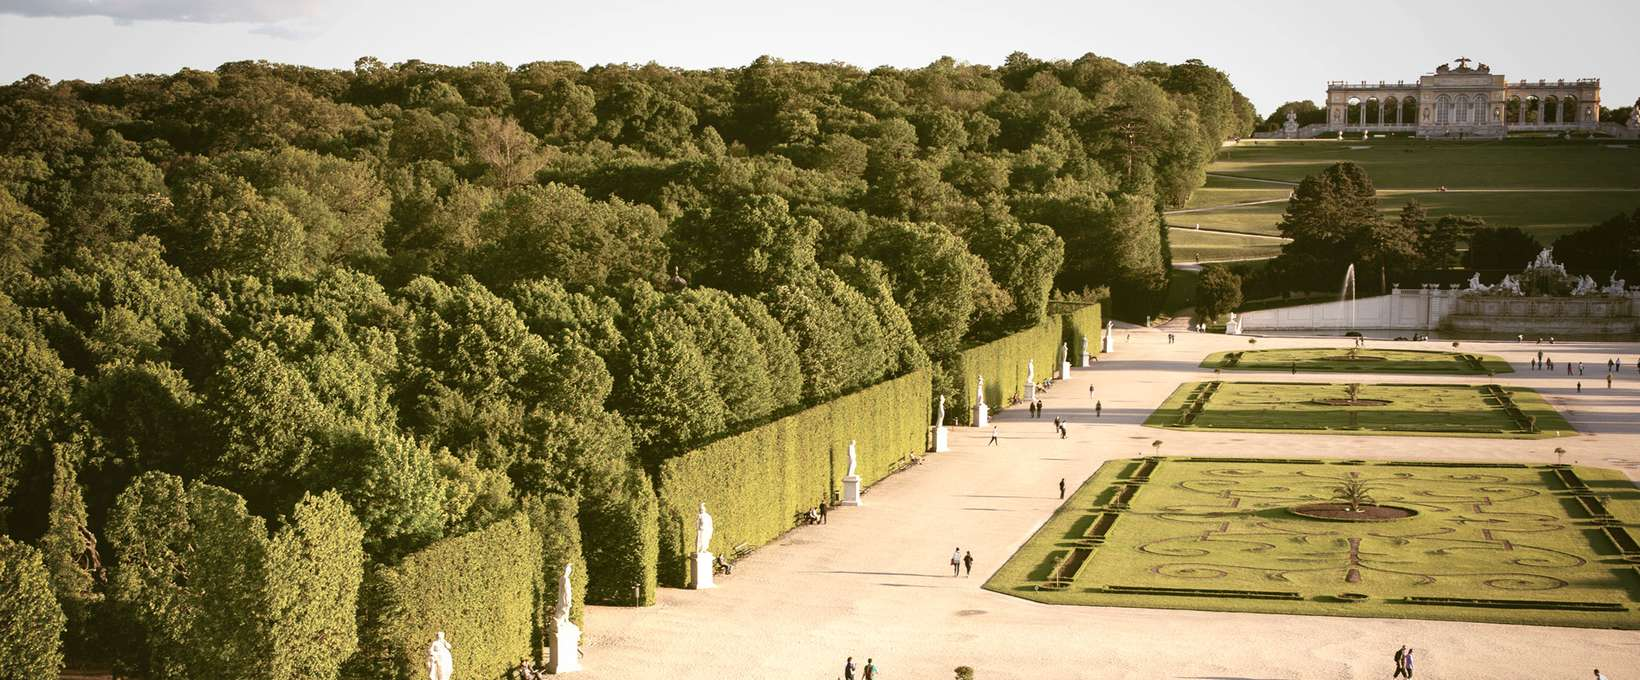 Palace garden Schönbrunn with a view of the Gloriette | Vienna | © WienTourismus | Peter Rigaud